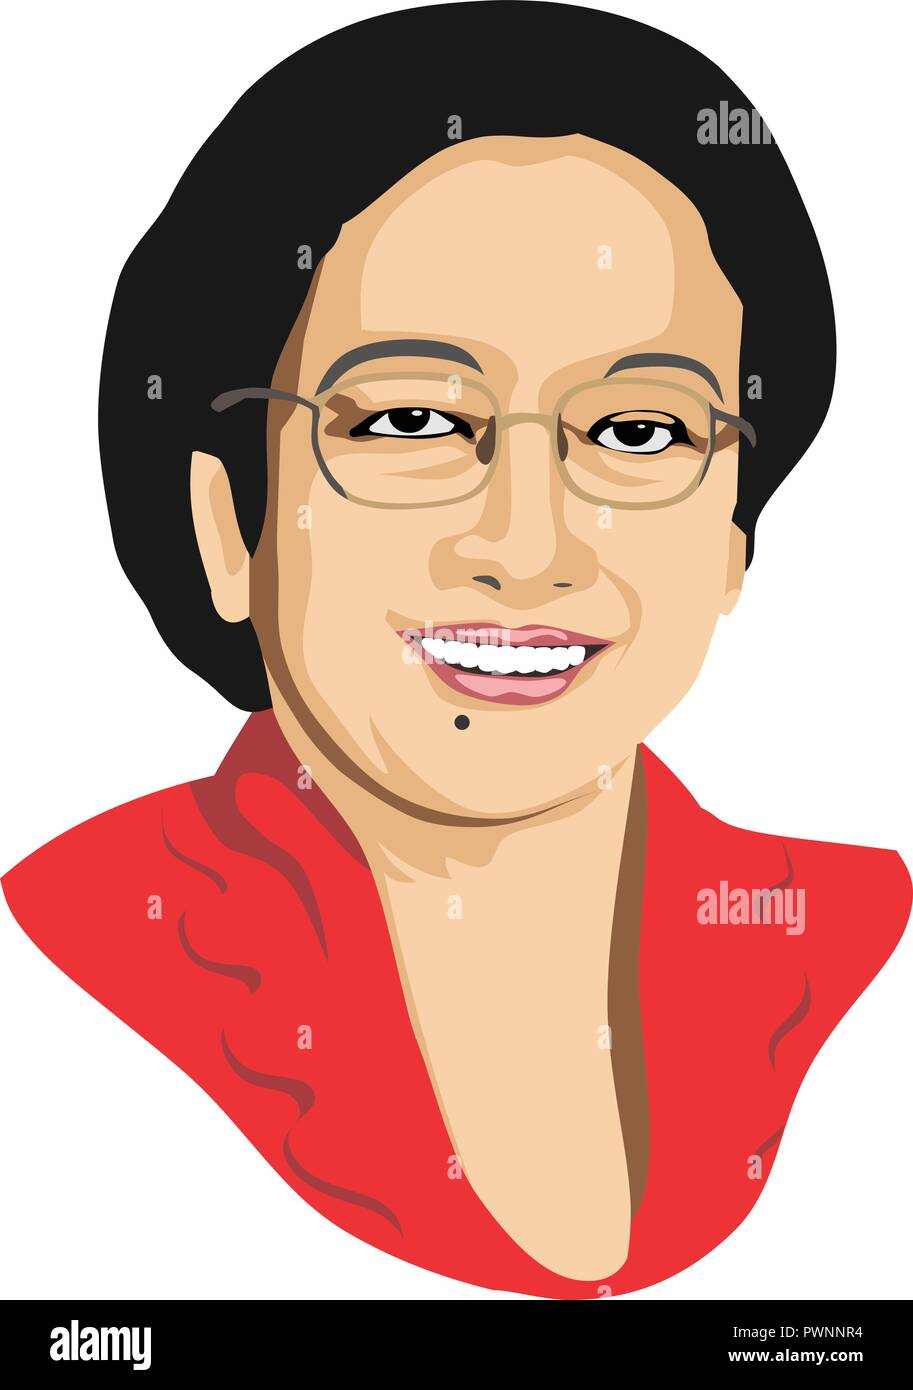 5th president of republic of indonesia megawati soekarnoputri stock vector image art alamy https www alamy com 5th president of republic of indonesia megawati soekarnoputri image222368920 html